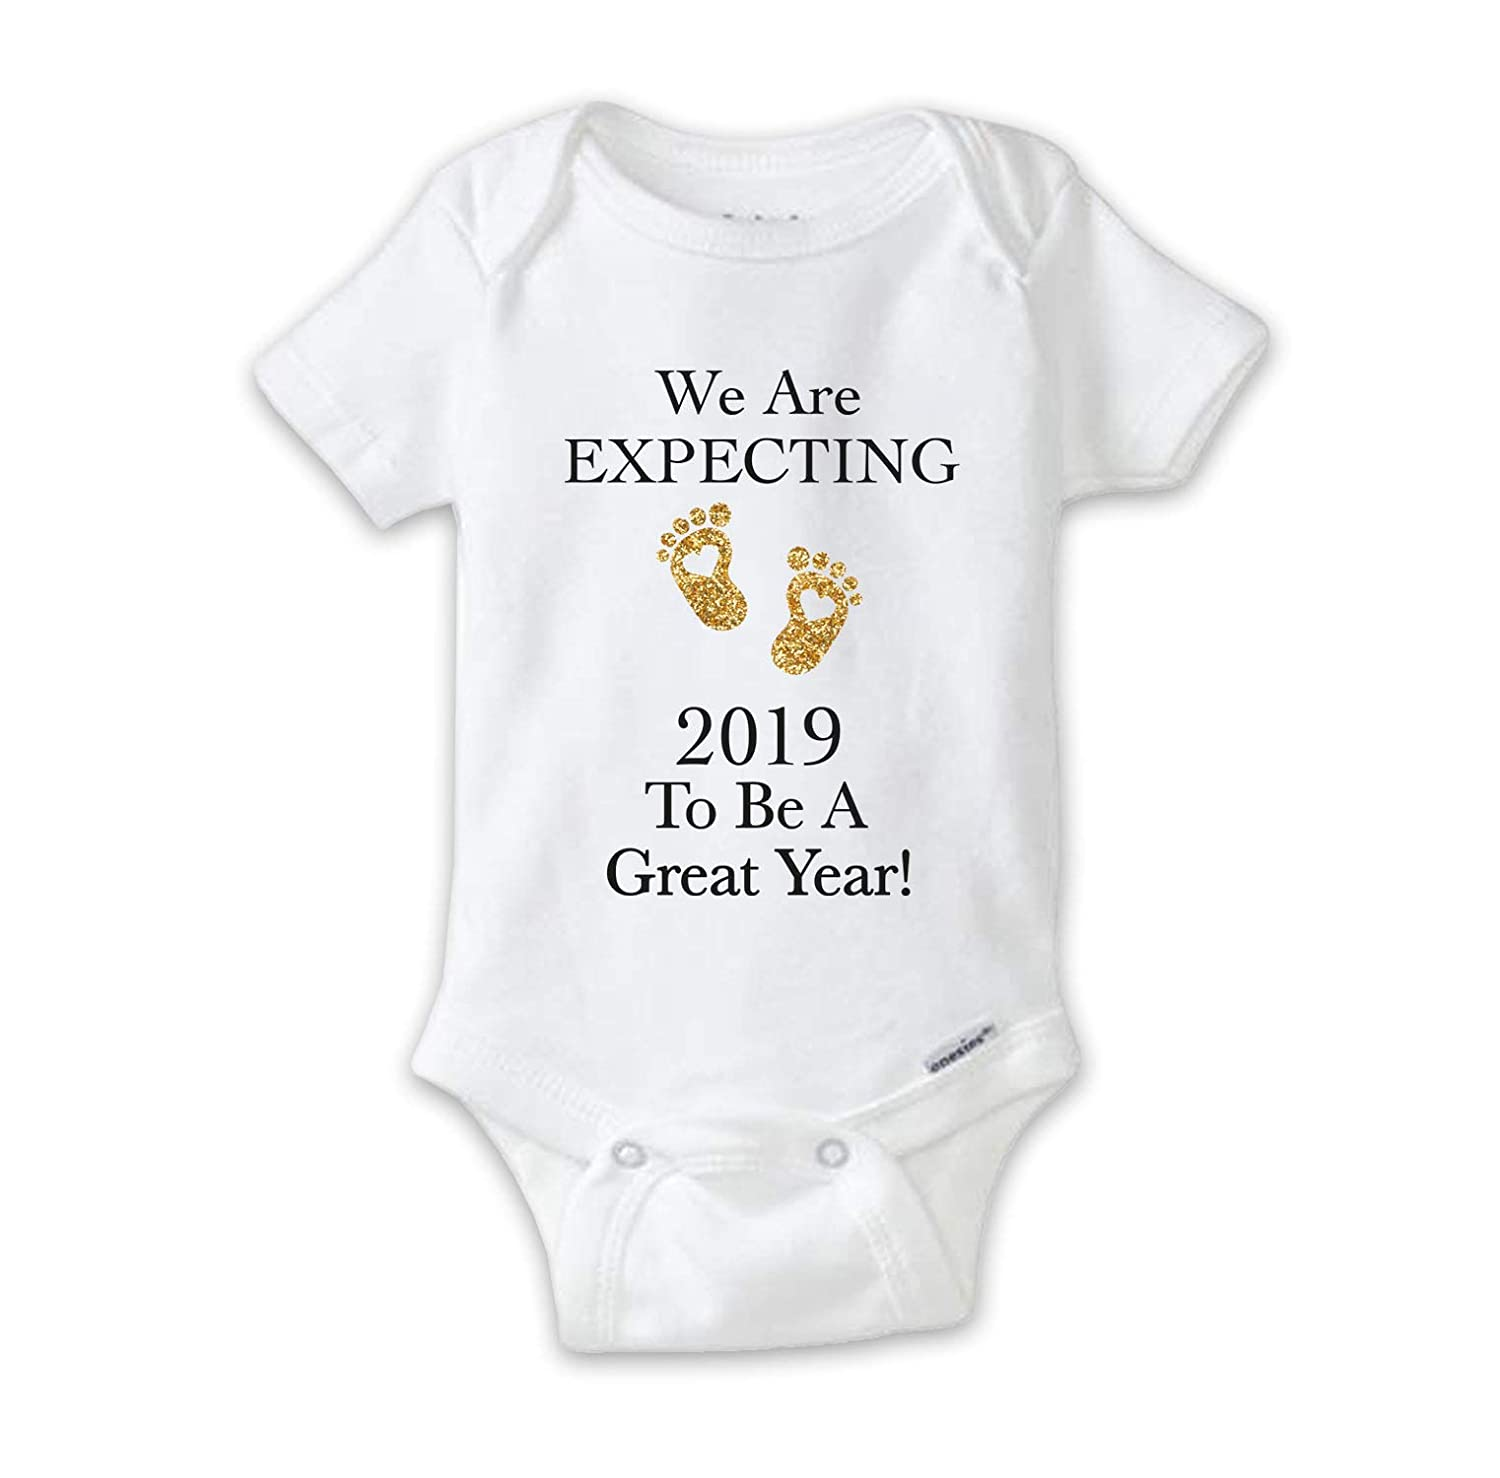 d7327905e06f9 Amazon.com: We are Expecting 2019 to Be A Great Year Baby Bodysuit, Pregnancy  Announcement Onesie, New Baby Reveal: Clothing